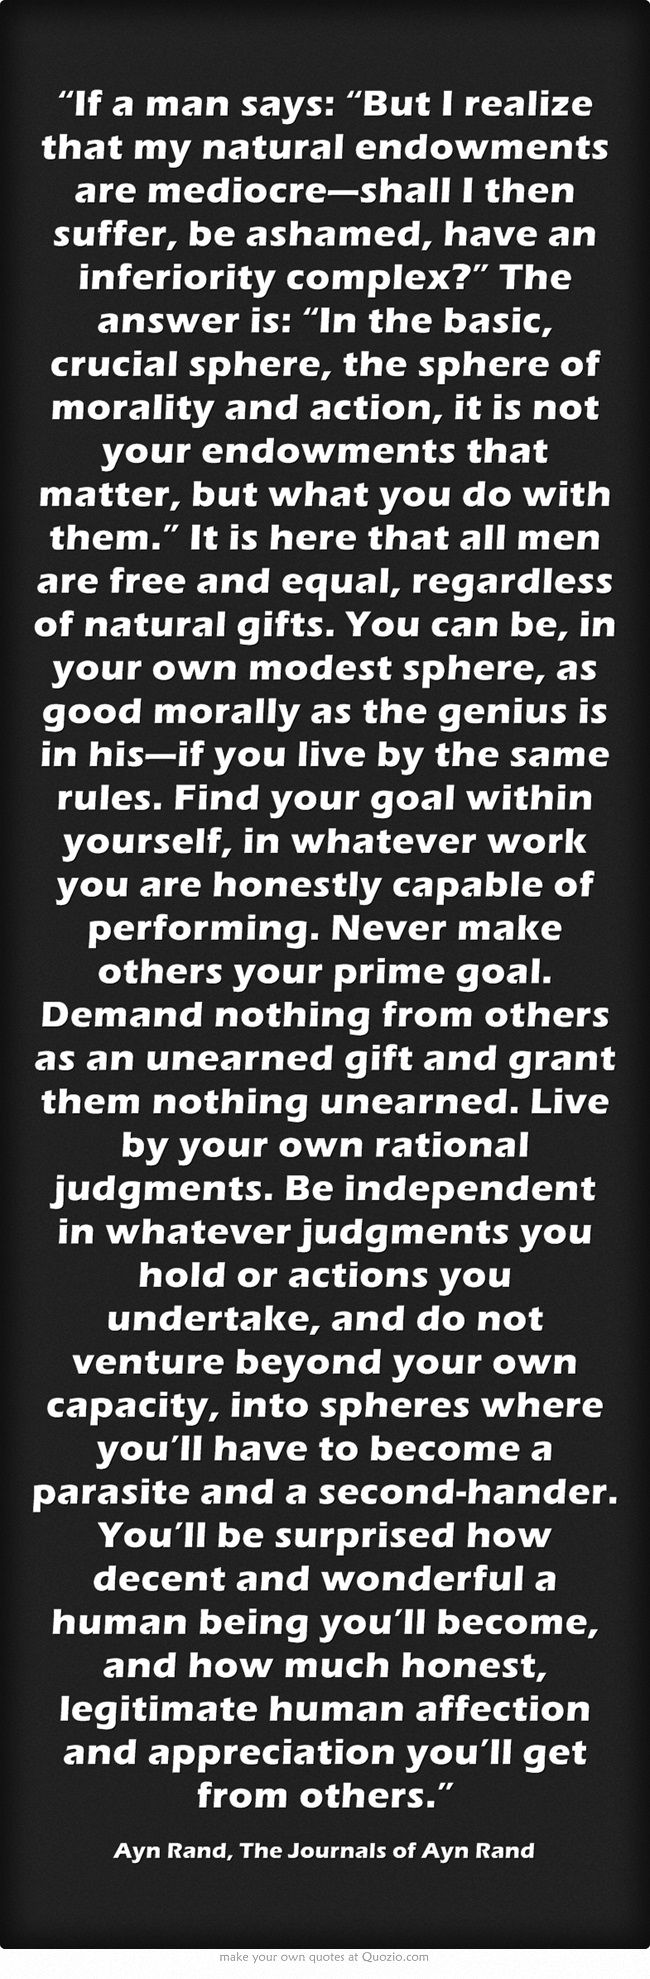 AYN RAND: It is not your endowments that matter, but what you do with them.